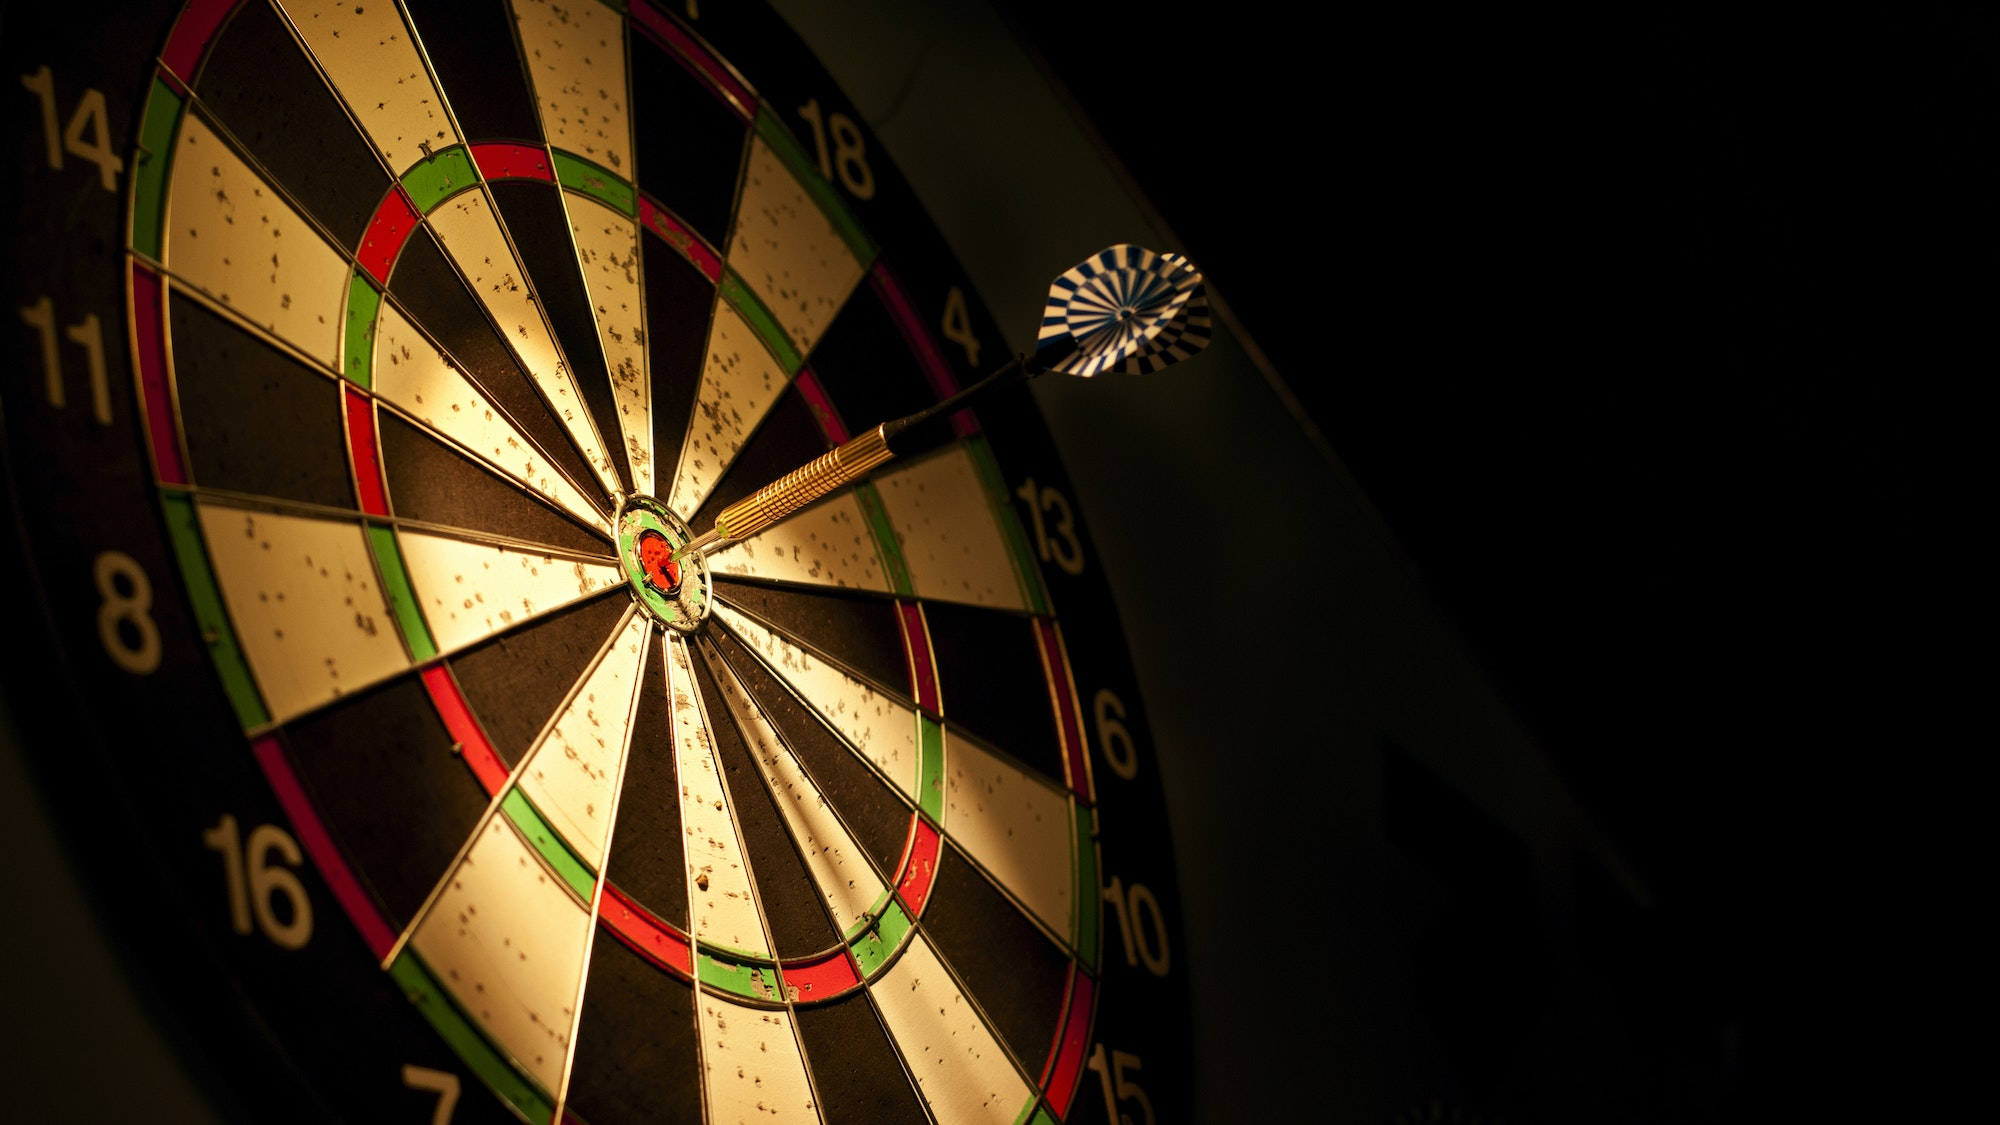 pdc world championship 2021 betting trends